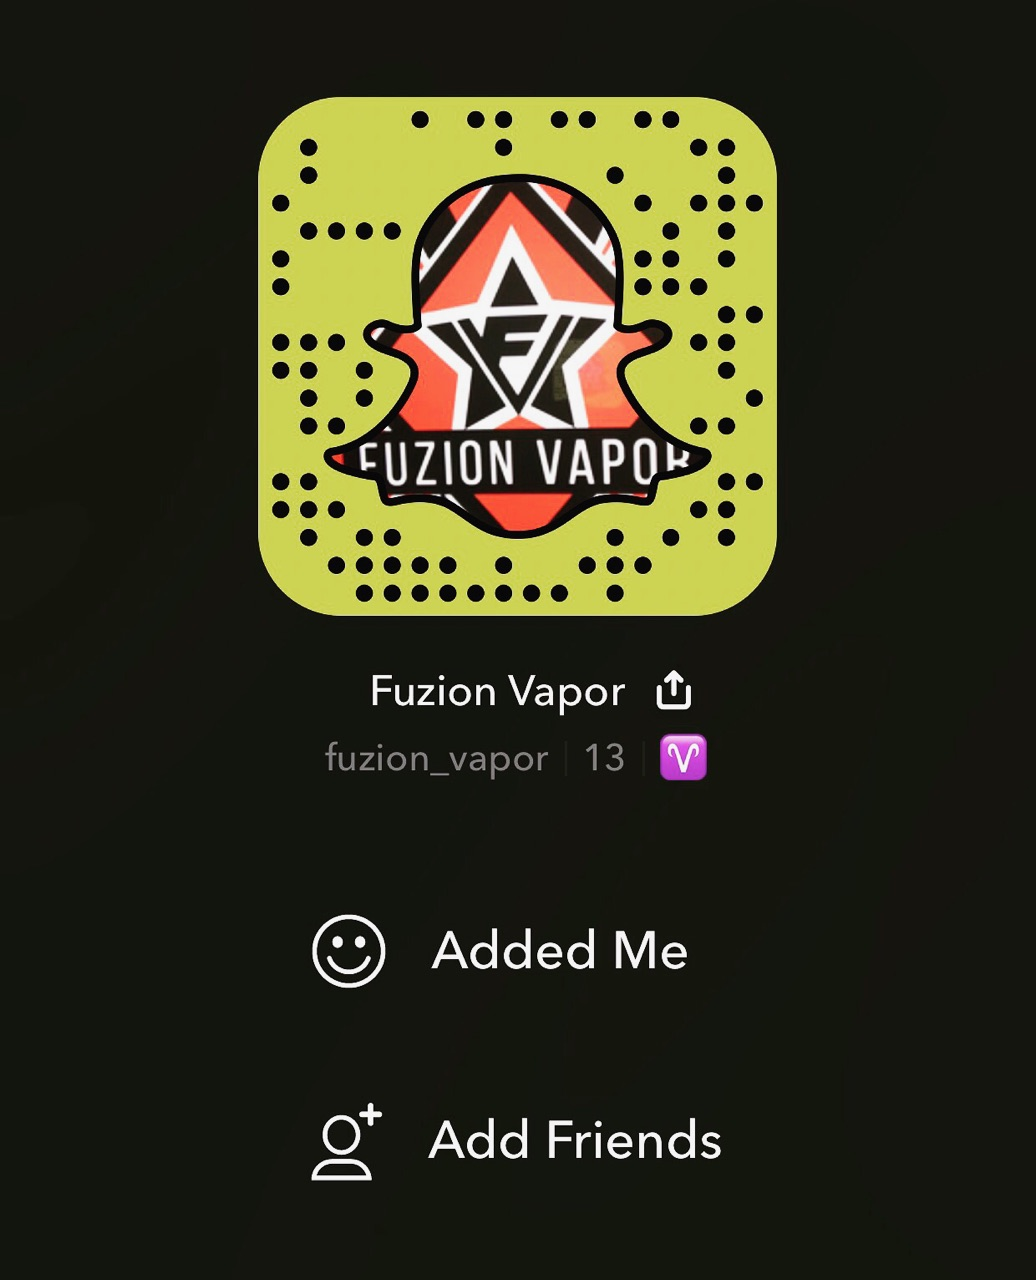 Follow Us On SnapChat! @Fuzion_Vapor